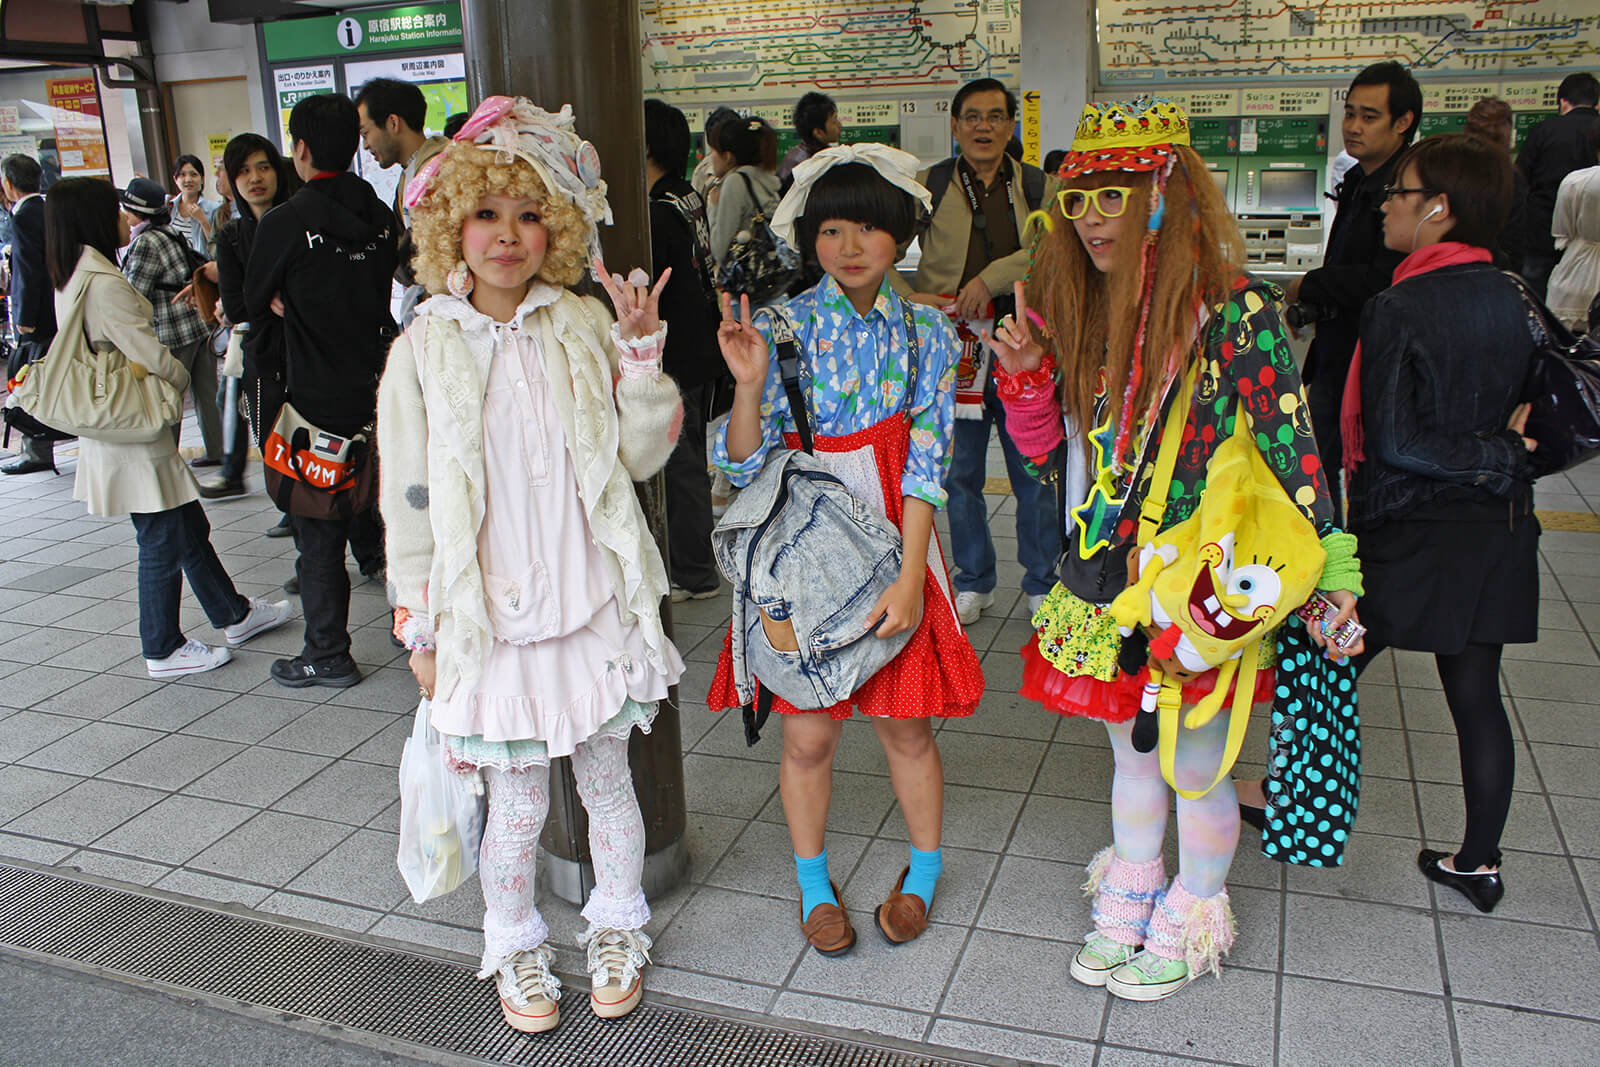 The Harajuku fashion district of Shibuya ward in Tokyo, Japan is known around the entire world